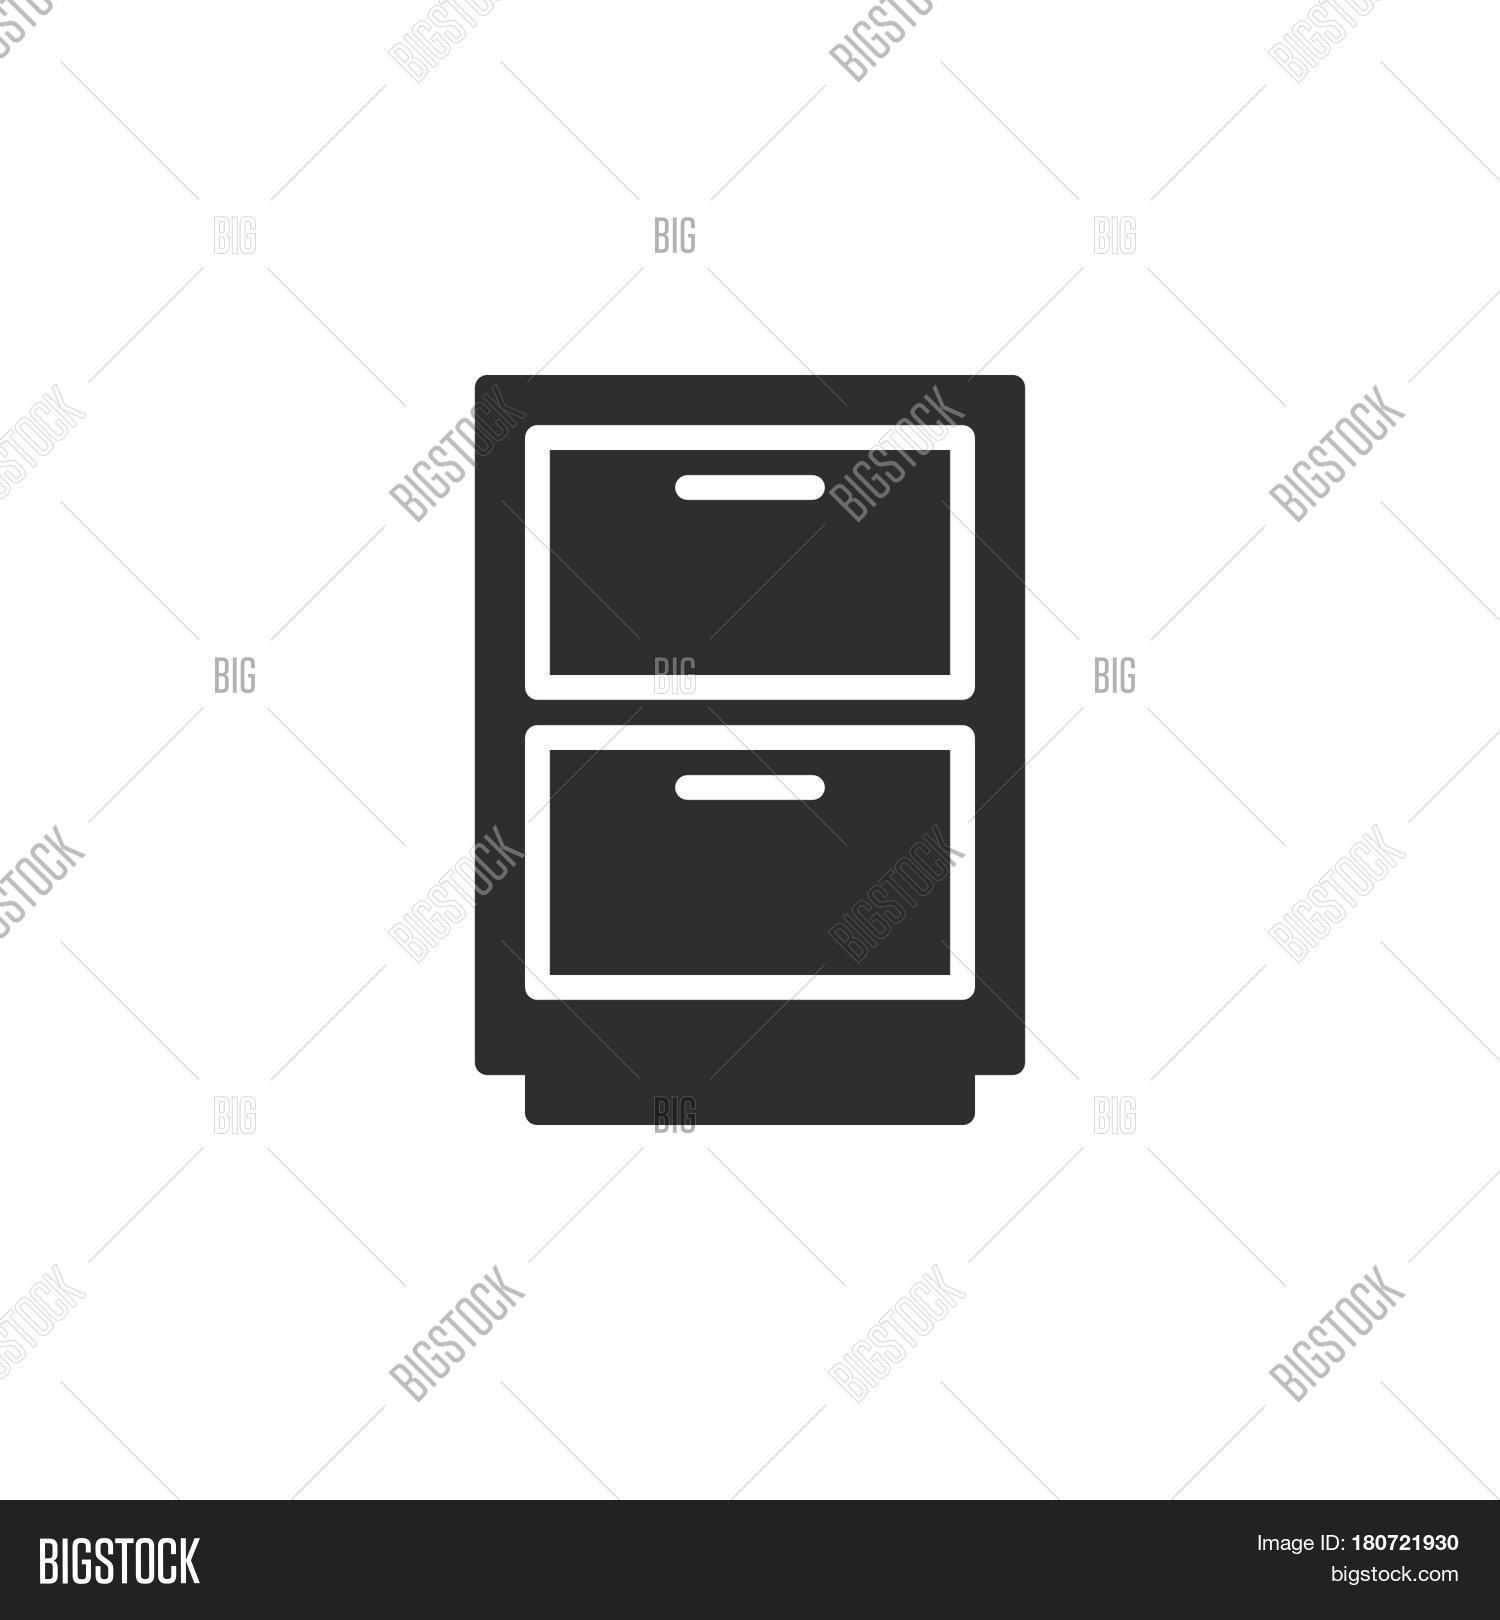 Filing Cabinet Icon Flat Cabinet Archive Icon Vector Photo Free Trial Bigstock